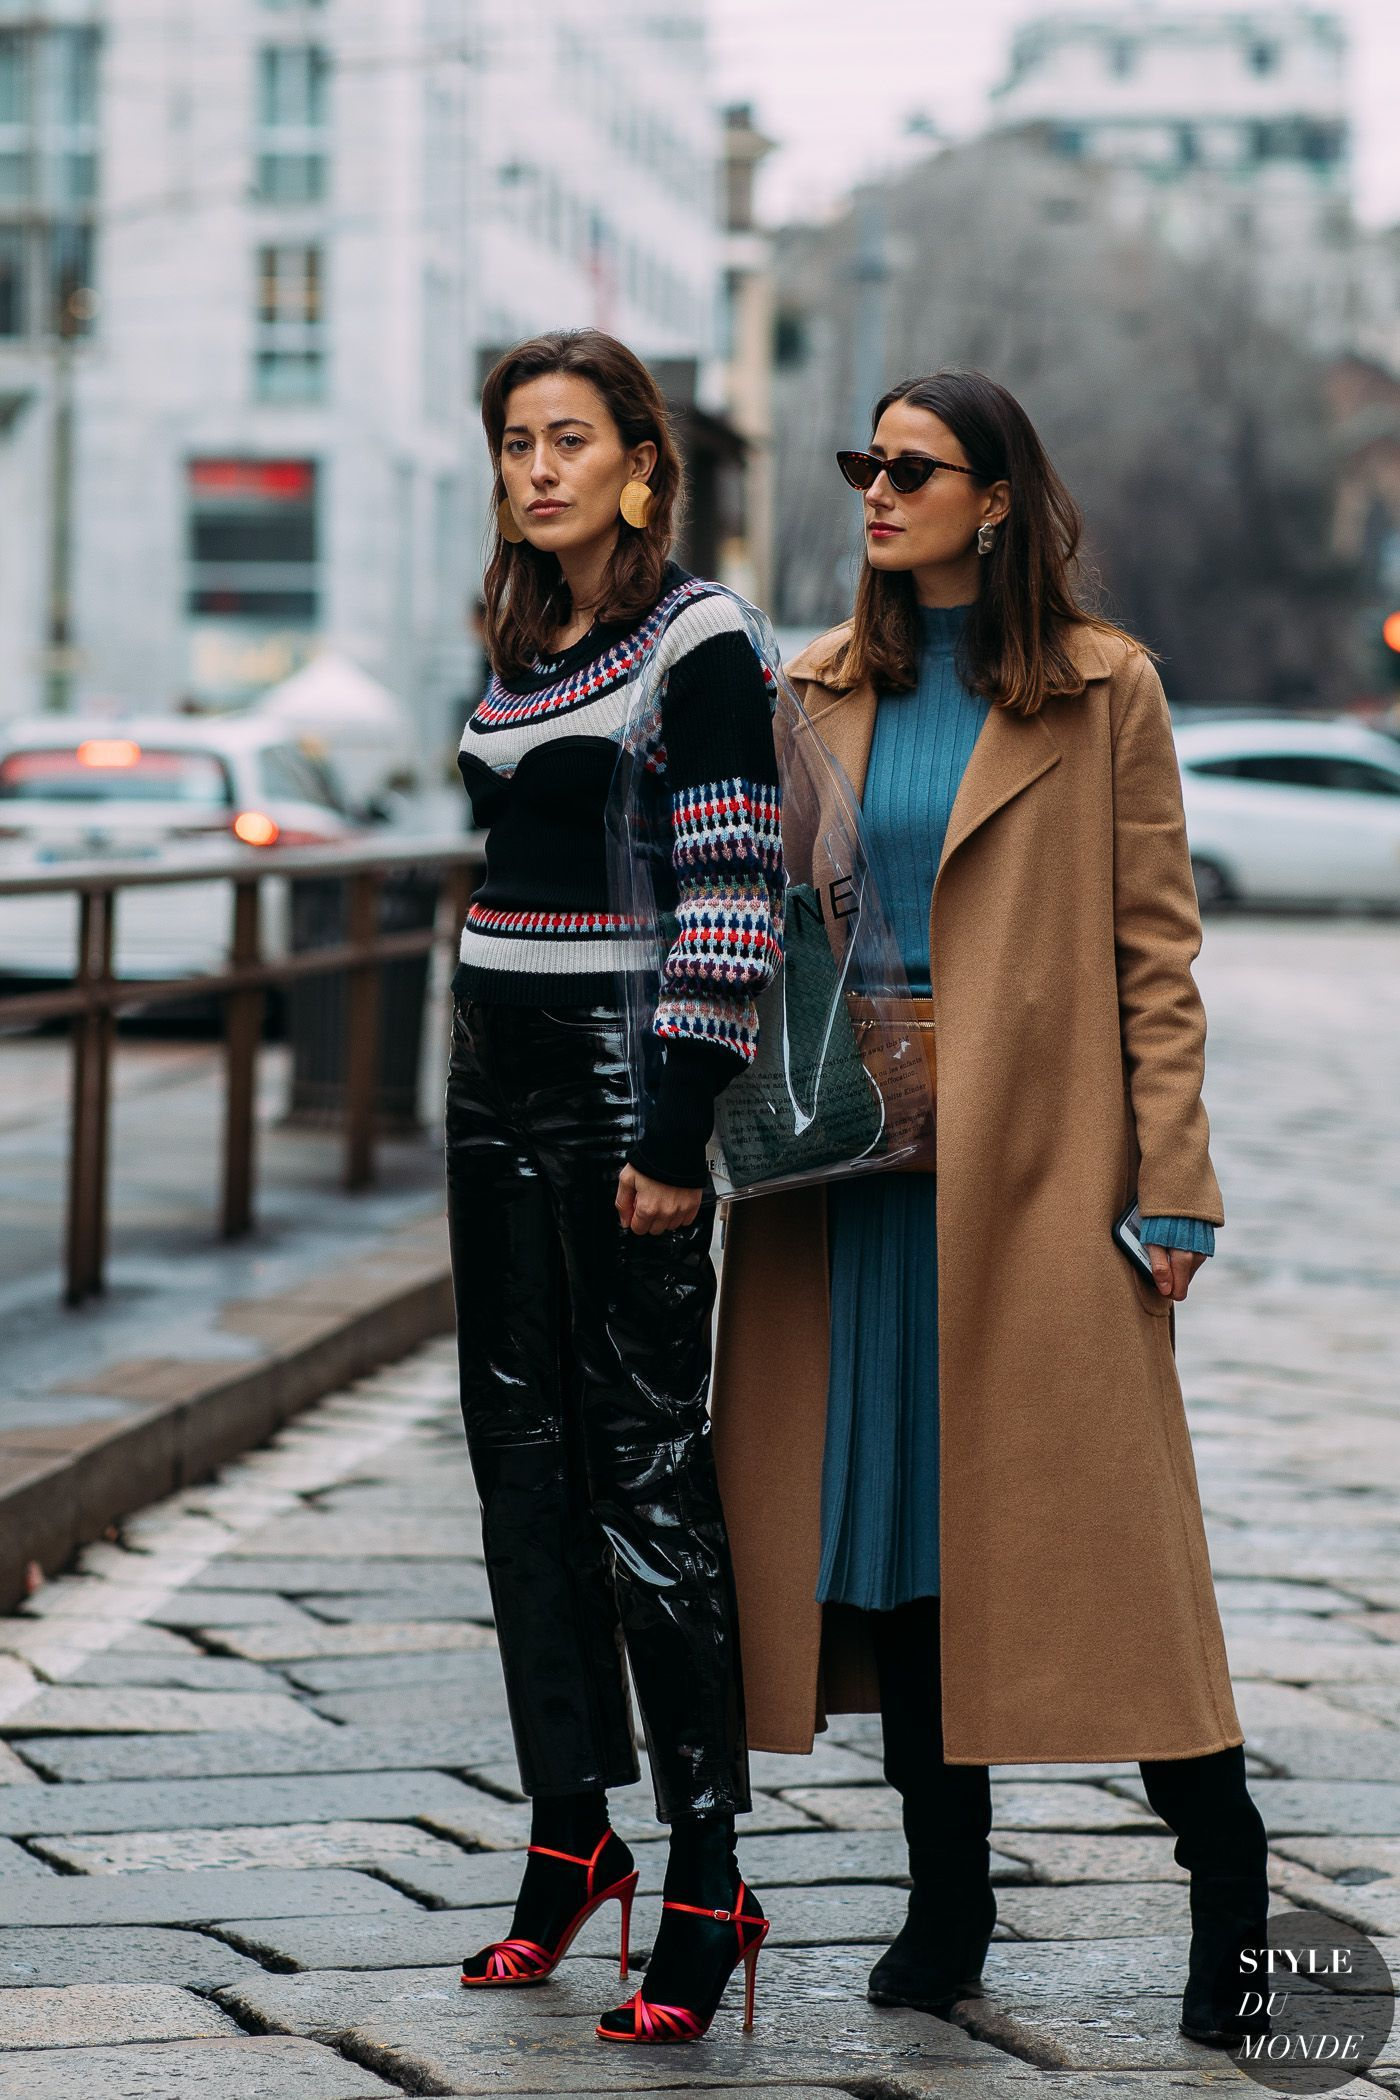 efa8103a695d Sylvia and Julia Haghjoo by STYLEDUMONDE Street Style Fashion Photography  FW18 20180223 48A6842  FutureFashionTrends